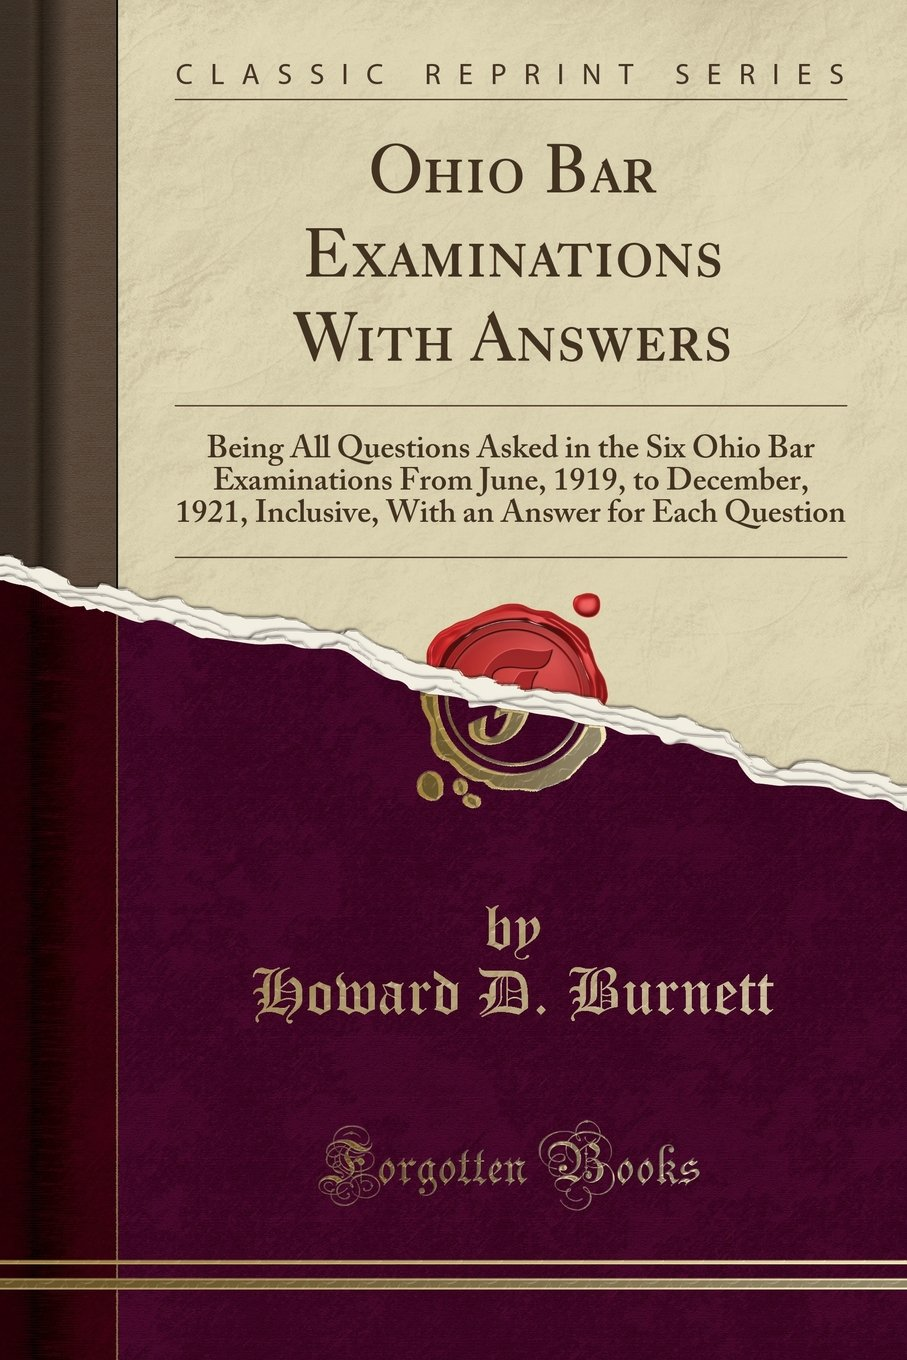 Download Ohio Bar Examinations With Answers: Being All Questions Asked in the Six Ohio Bar Examinations From June, 1919, to December, 1921, Inclusive, With an Answer for Each Question (Classic Reprint) pdf epub